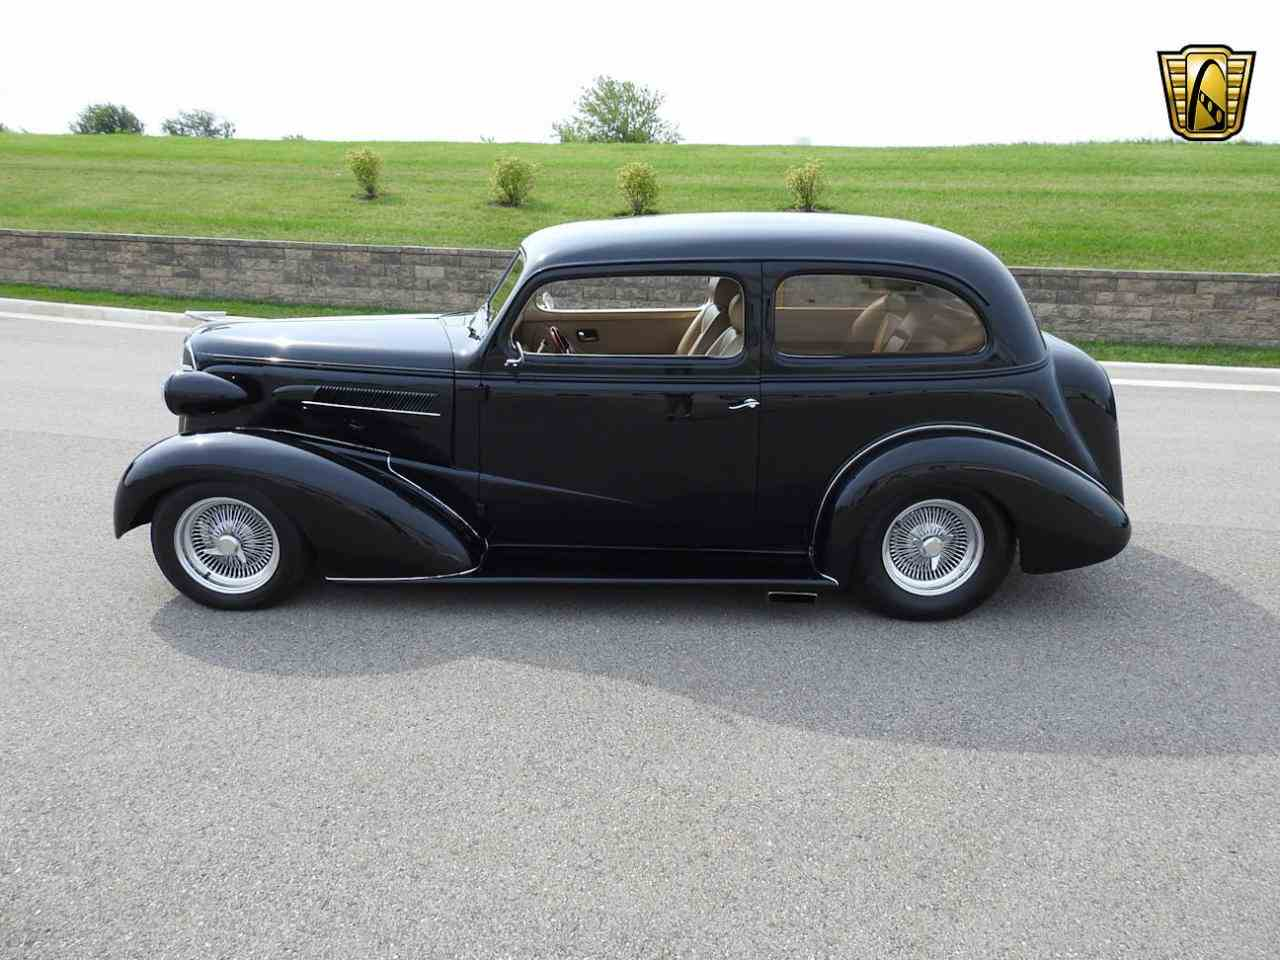 Large Picture of '37 Chevrolet Street Rod Offered by Gateway Classic Cars - Milwaukee - MZDR